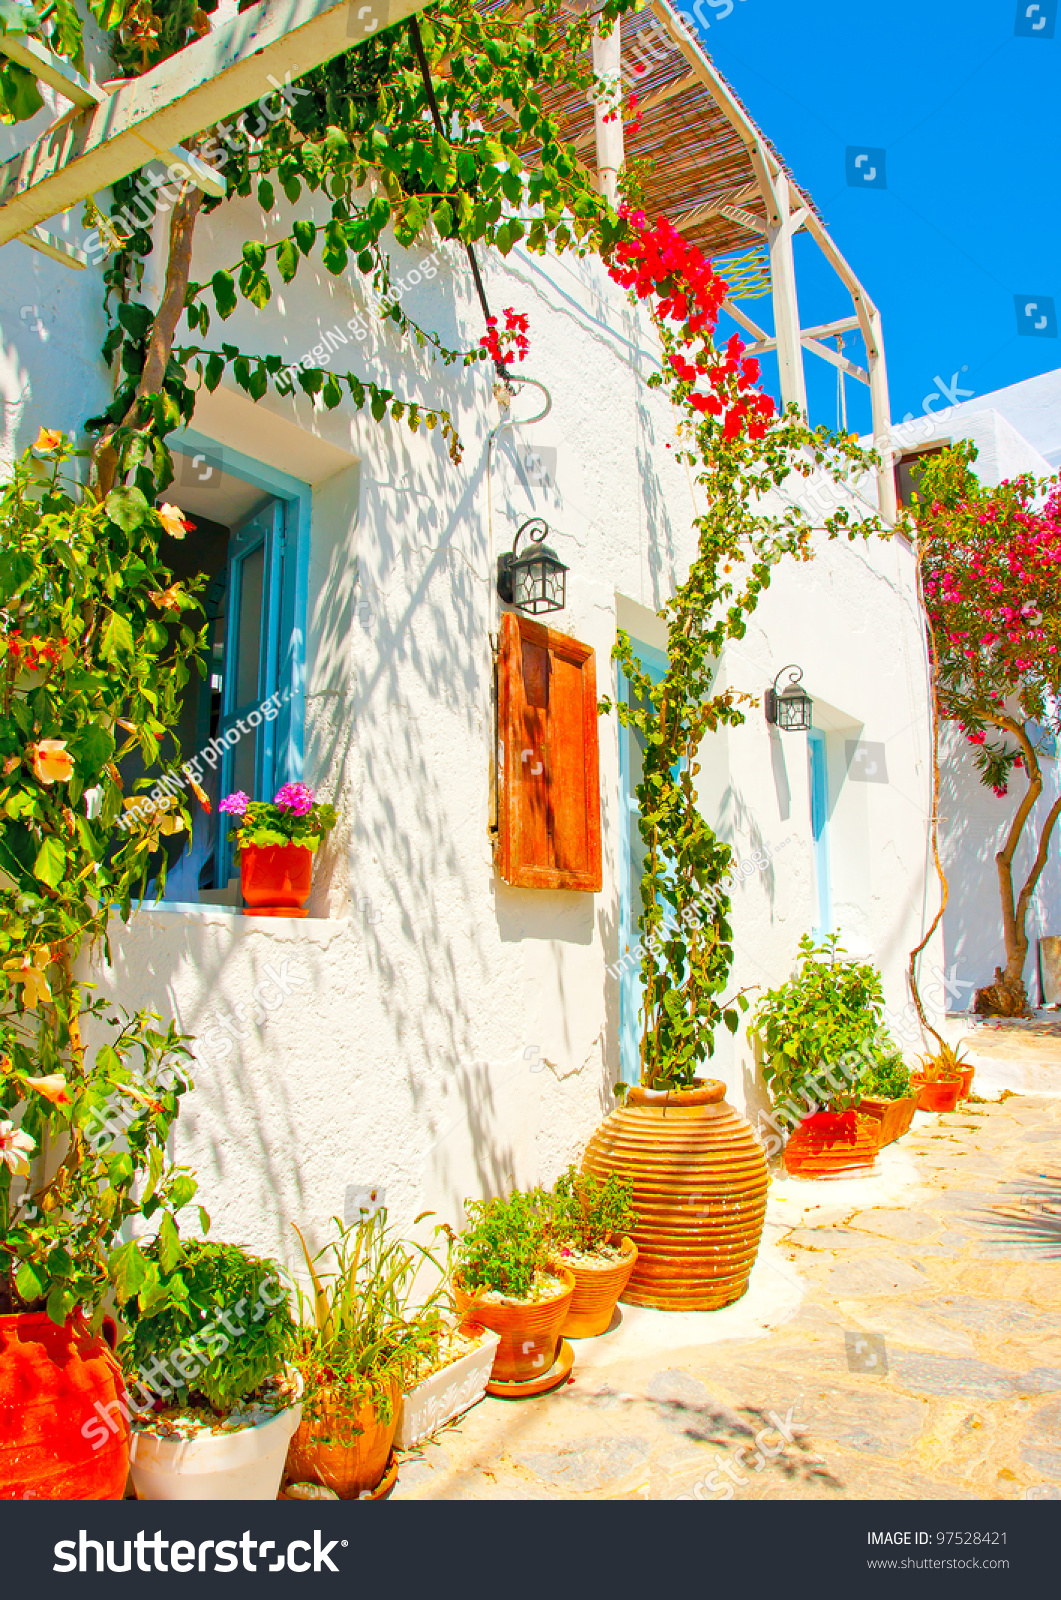 Old beautiful traditional house in chora the capital of amorgos island - Old Beautiful Traditional House In Chora The Capital Of Amorgos Island In Greece Preview Save To A Lightbox